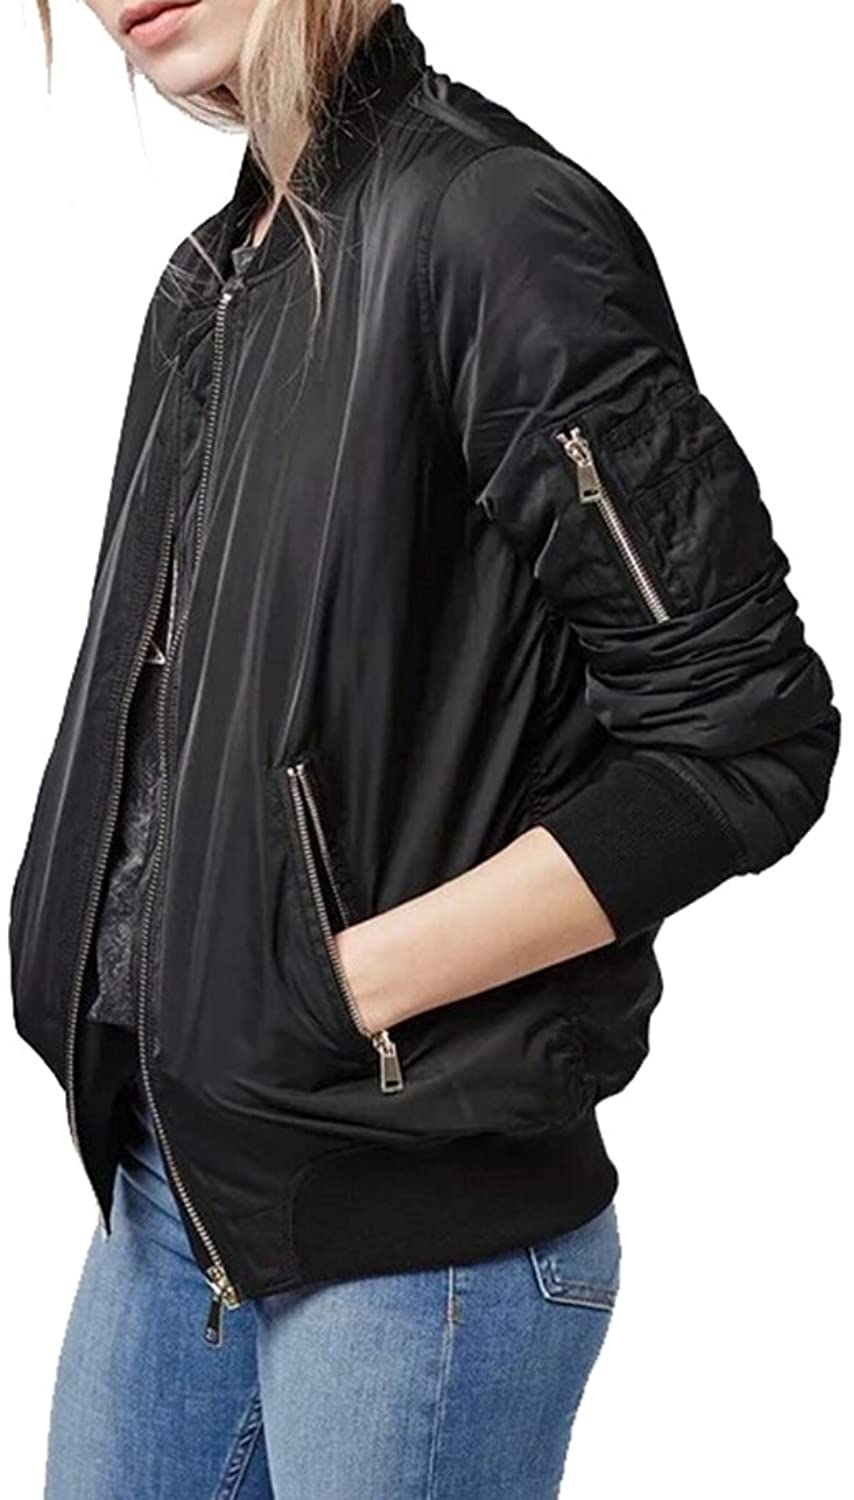 KXP Womens Casual Back Ruched Pocket Autumn Solid Bomber Jackets